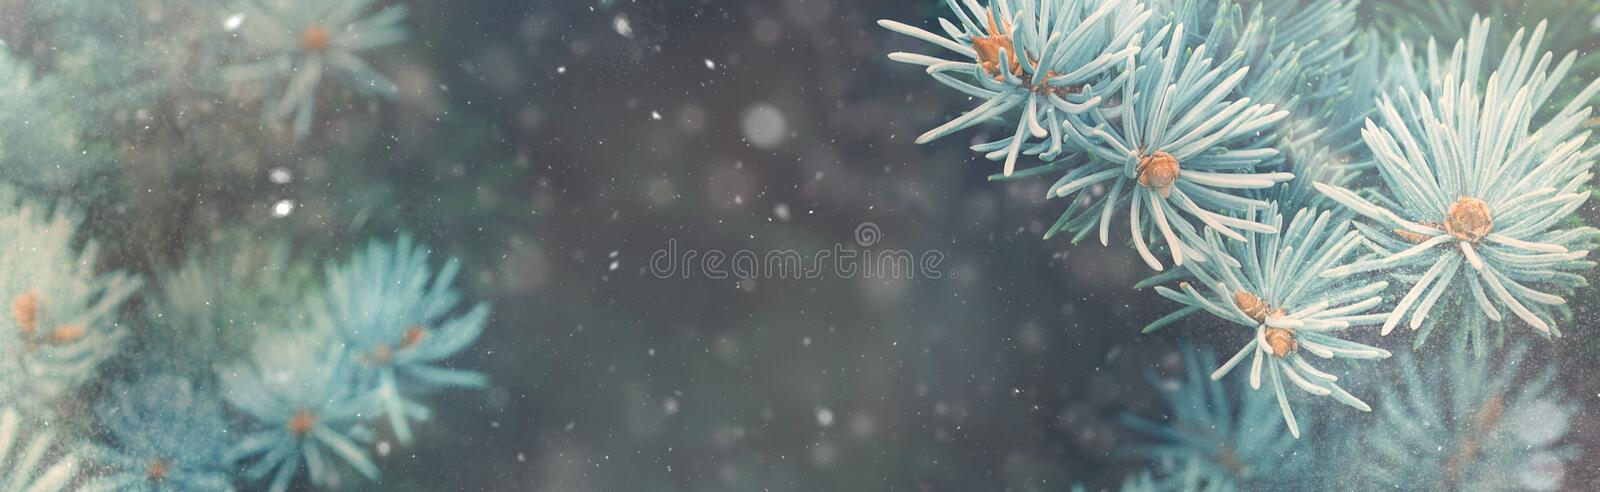 Snow fall in winter forest. Christmas nature magic banner stock photography